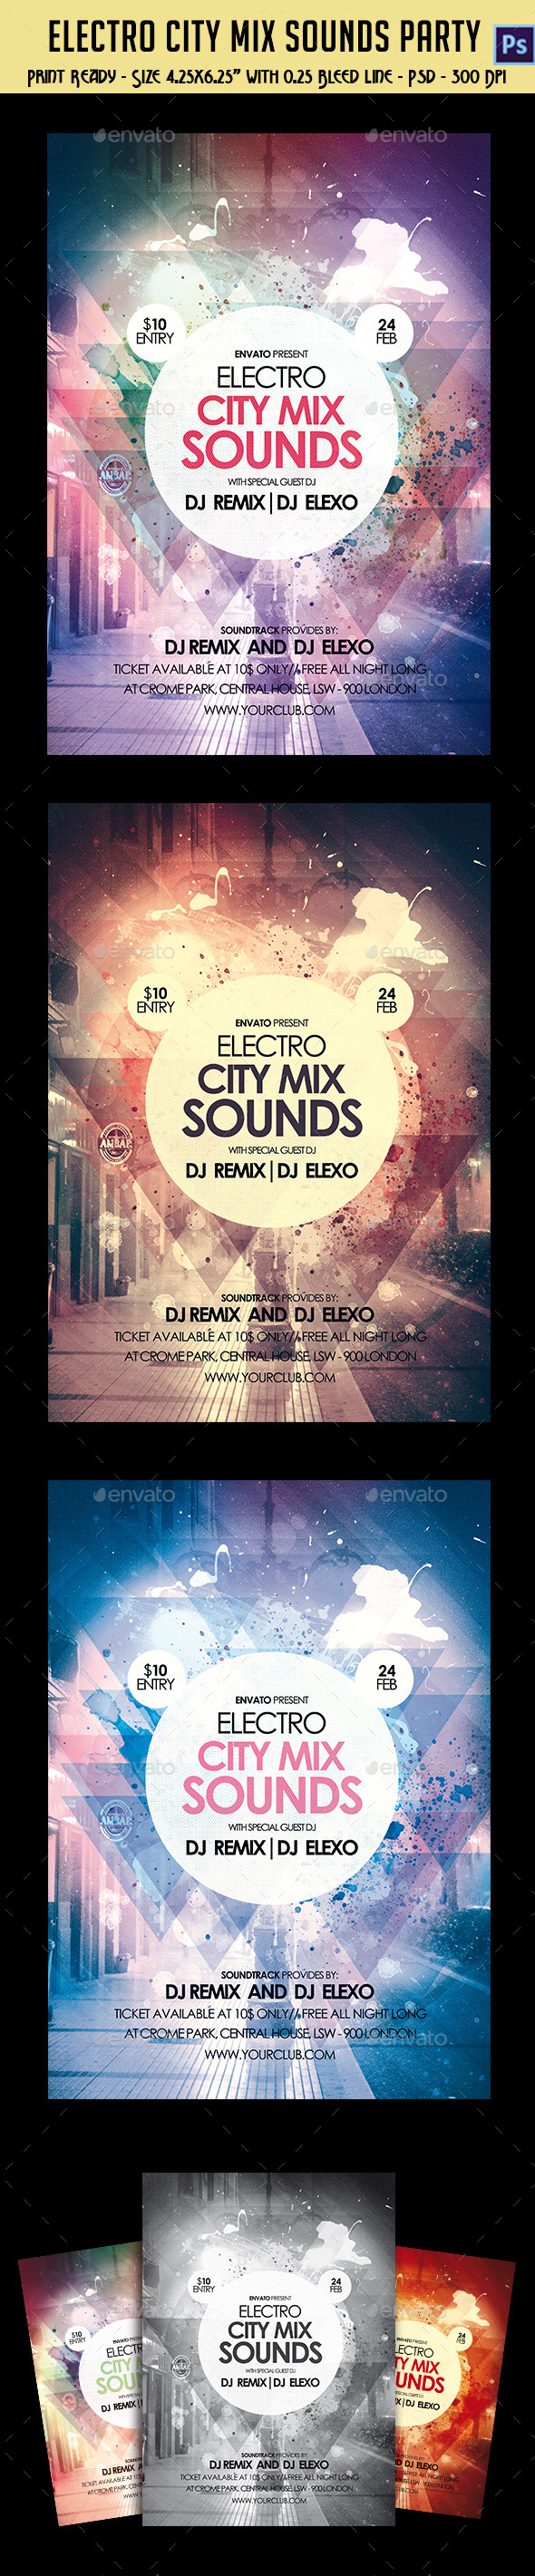 GraphicRiver Electro City Mix Sounds Party Flyer 10636638